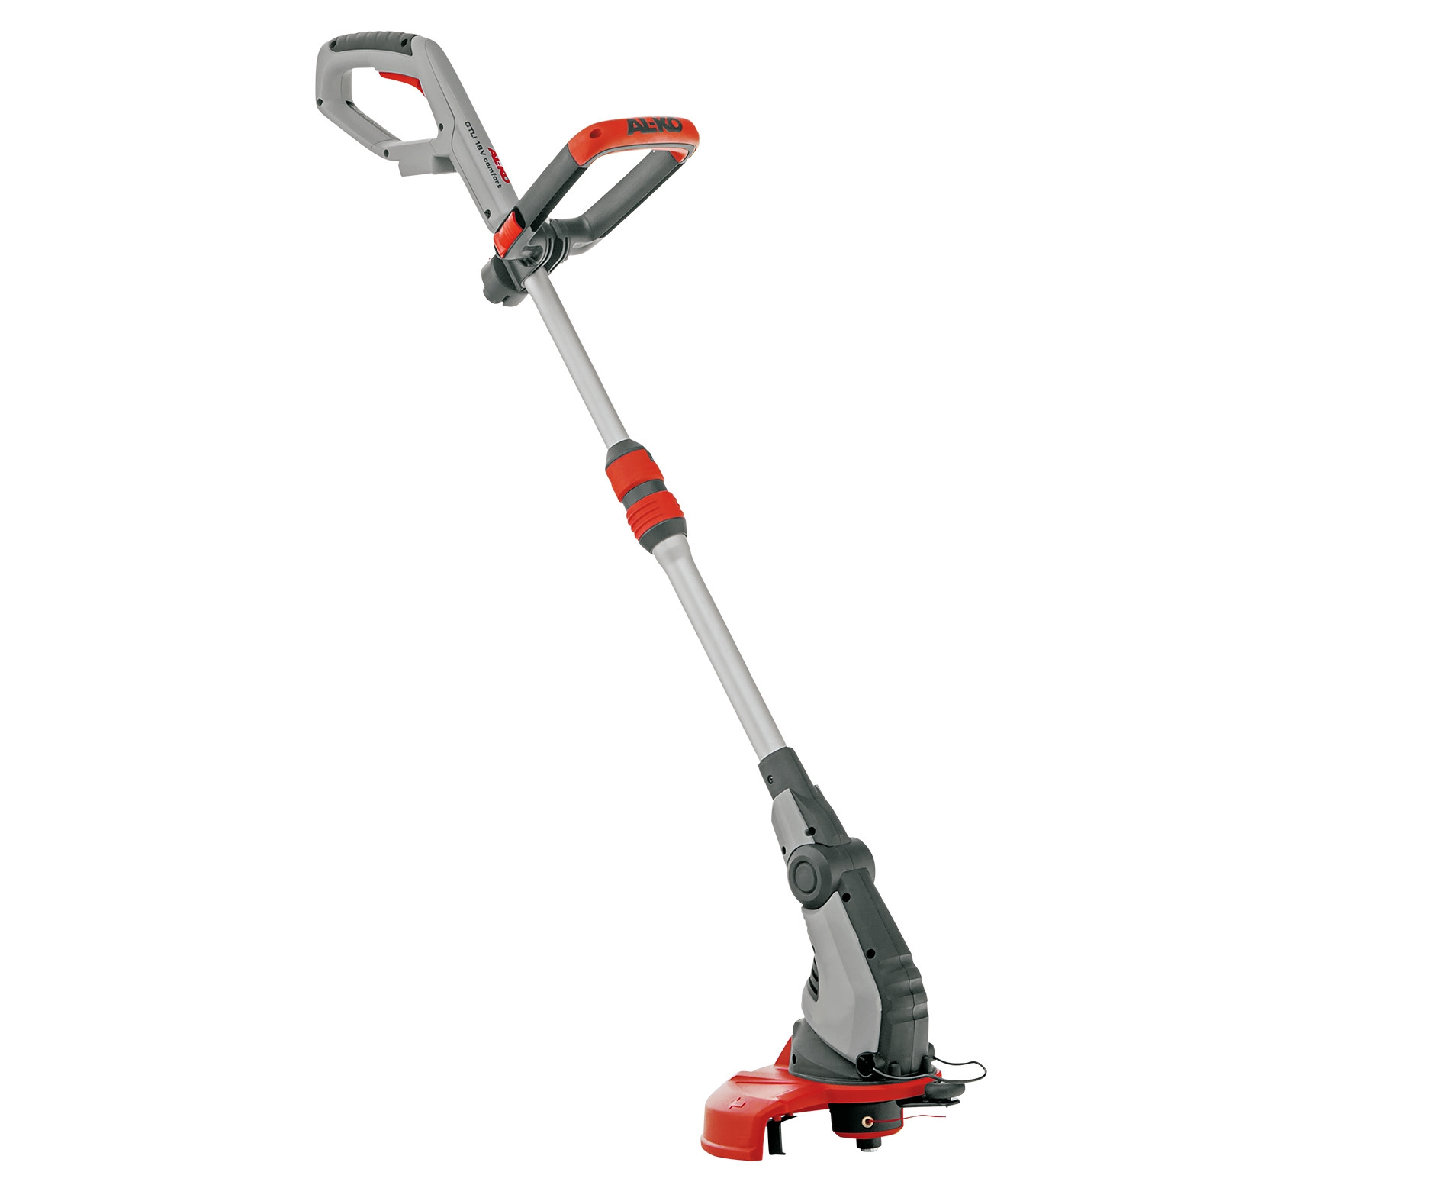 AL-KO EasyFlex GT 2025 battery brushcutter/strimmer